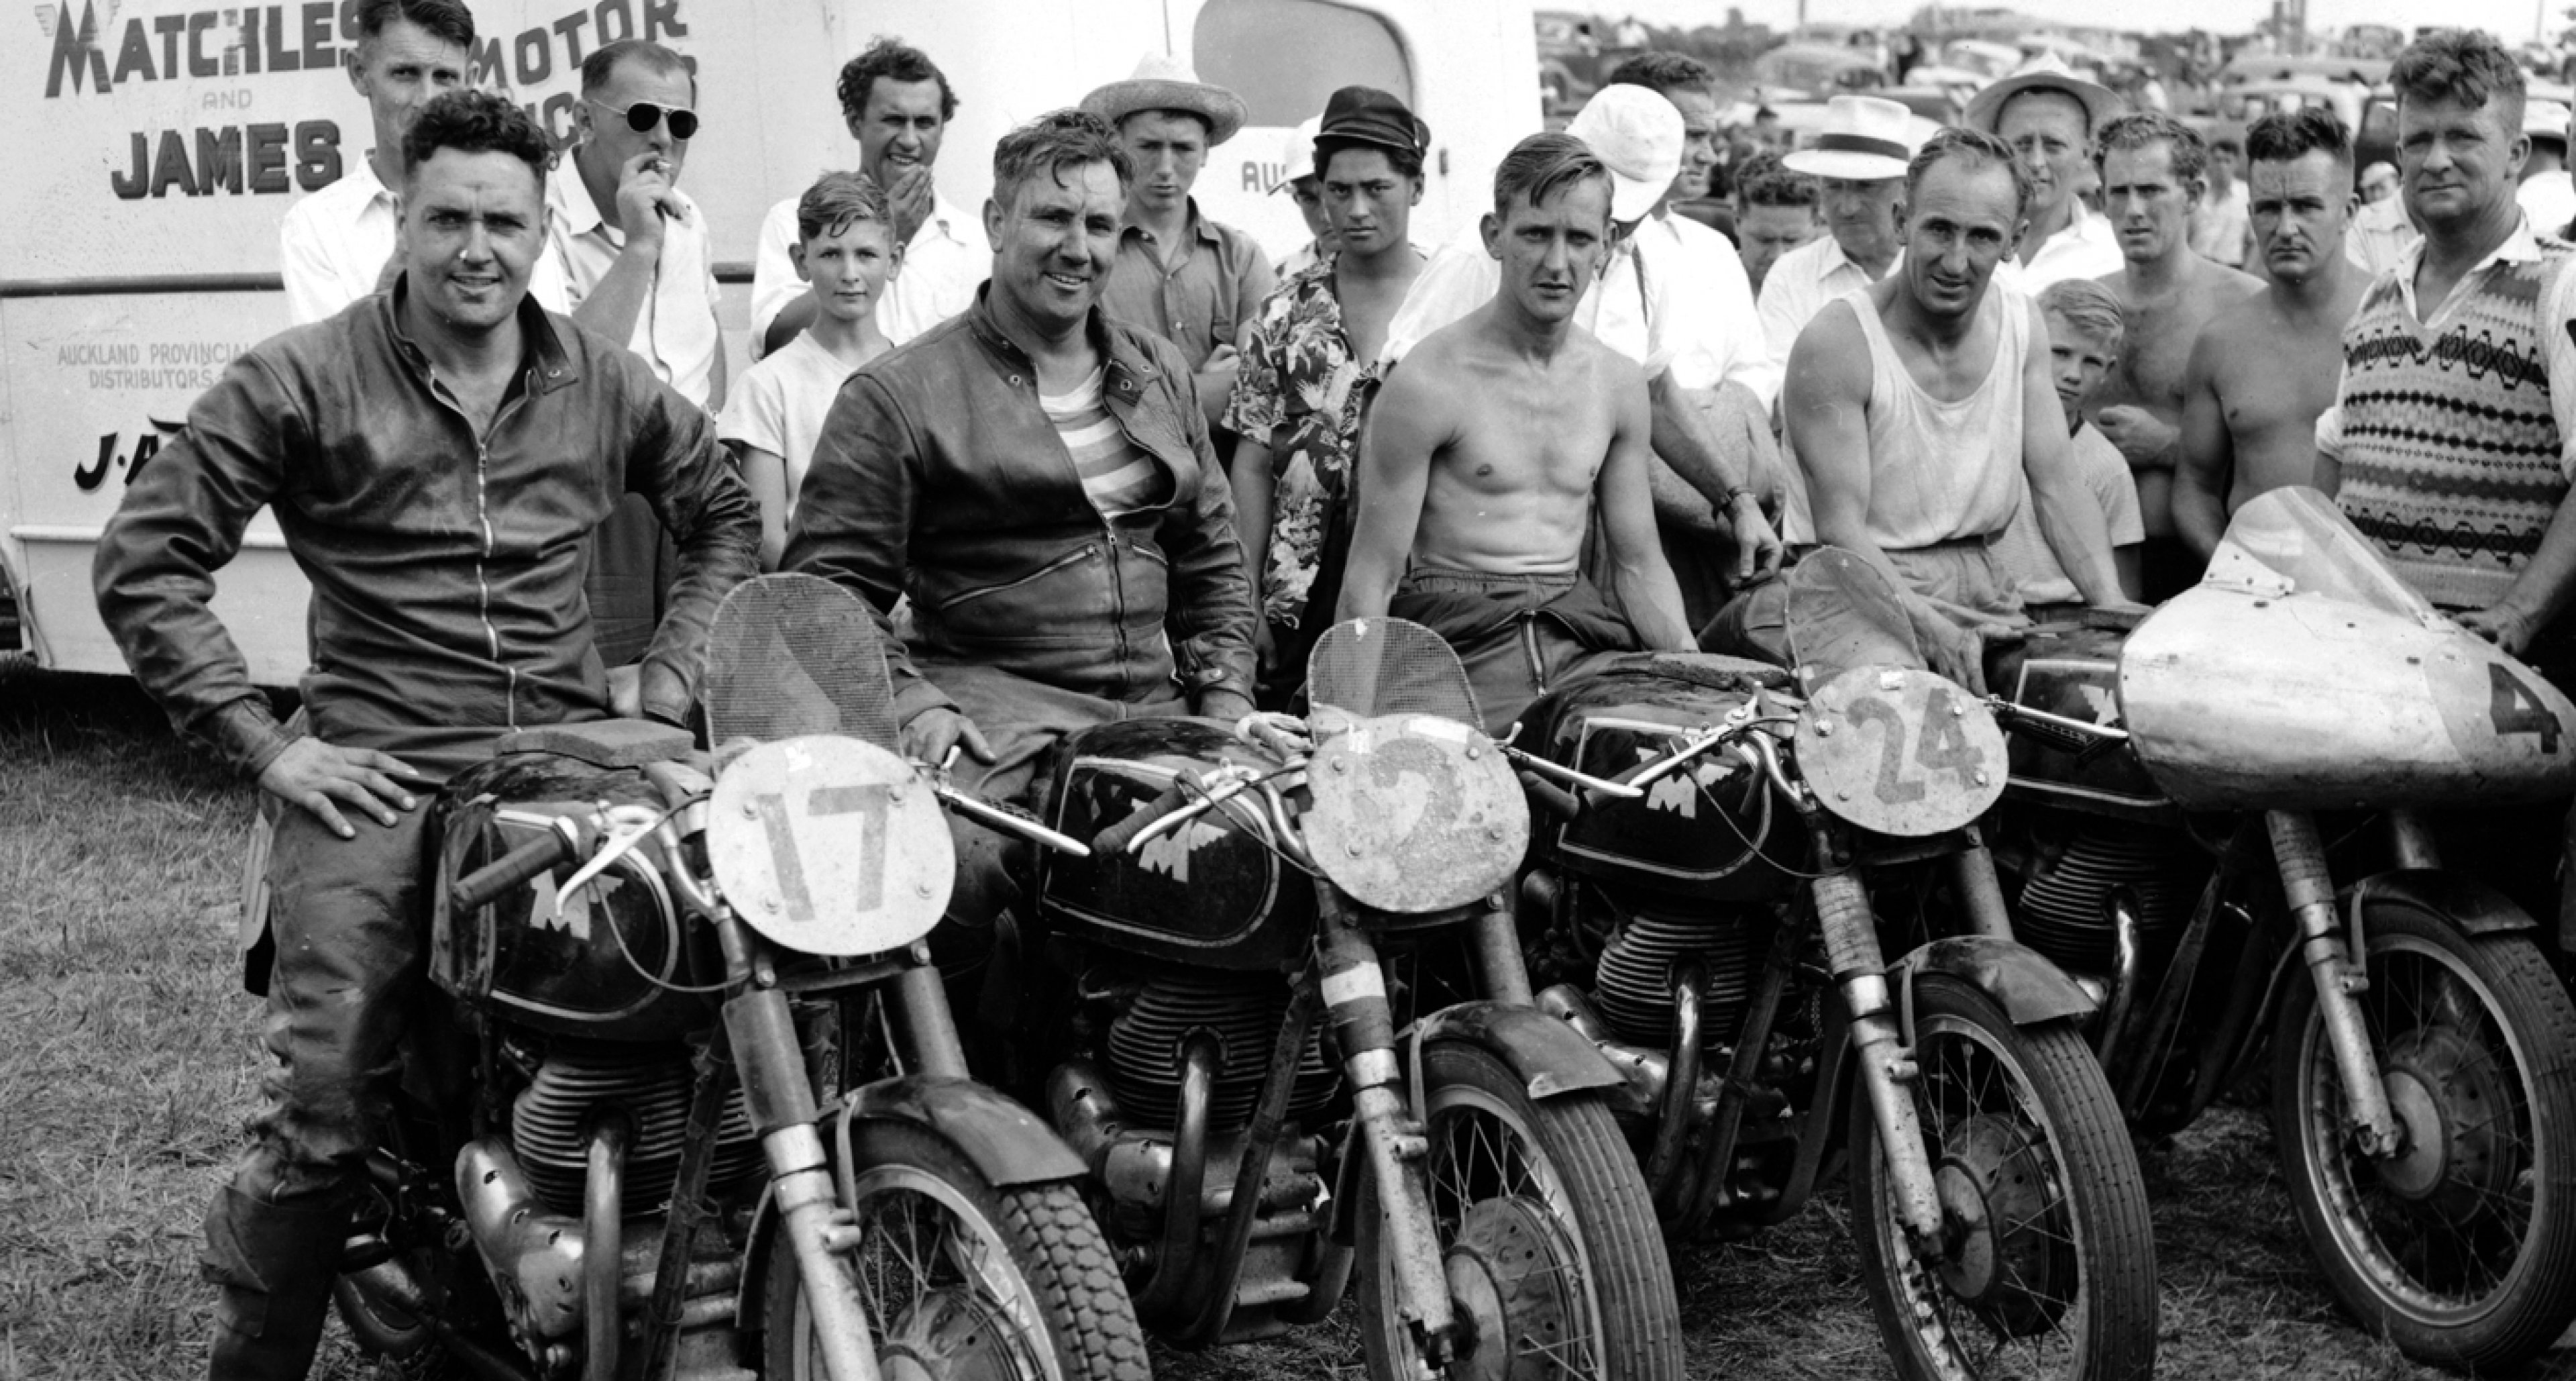 Matchless motorbike racing team. Lined up in front of their team bus.